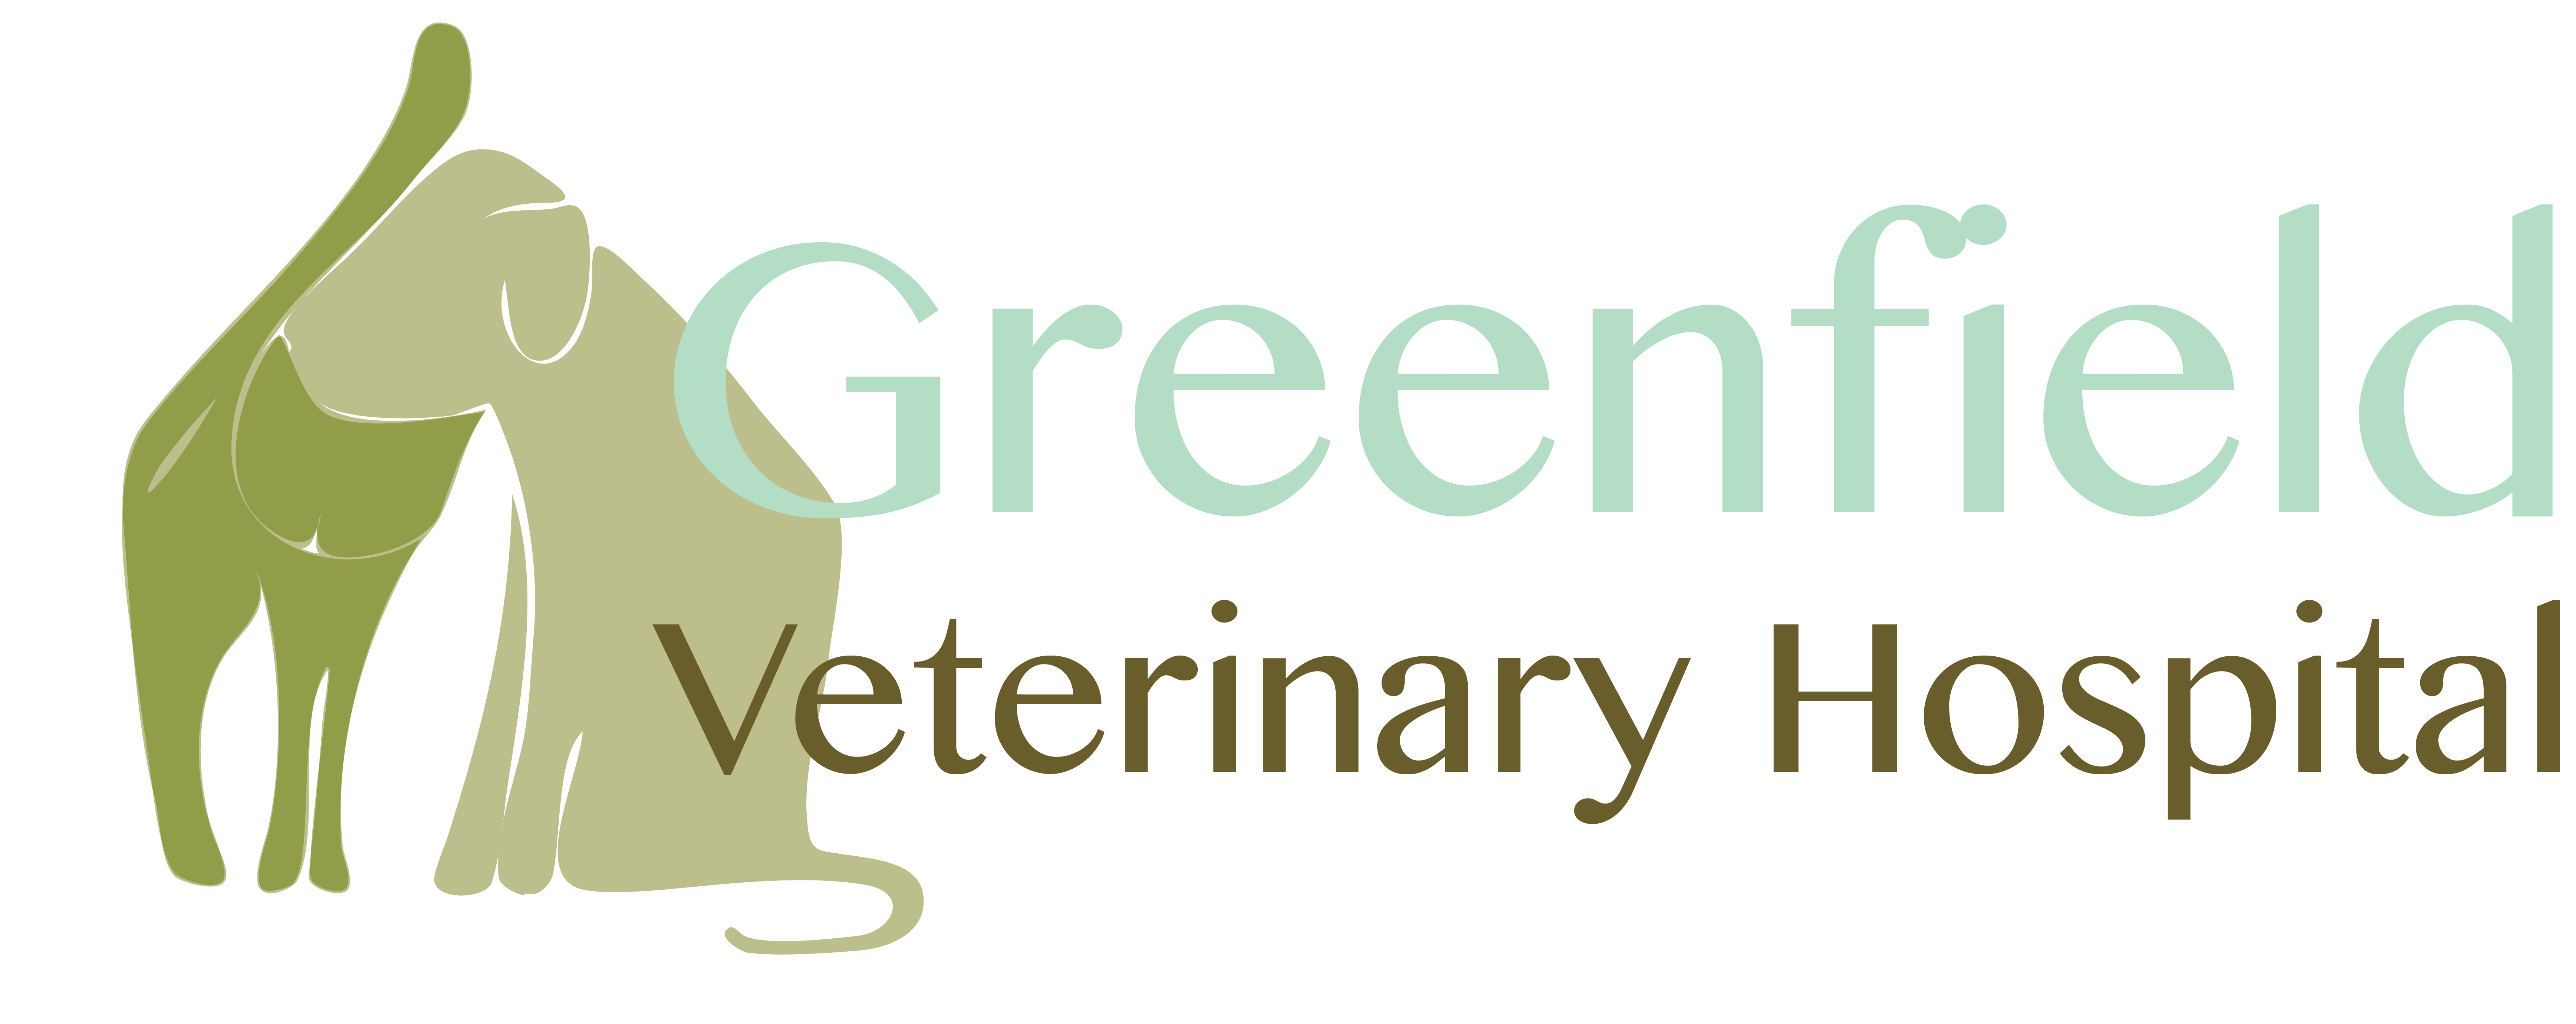 Greenfield Veterinary Hospital